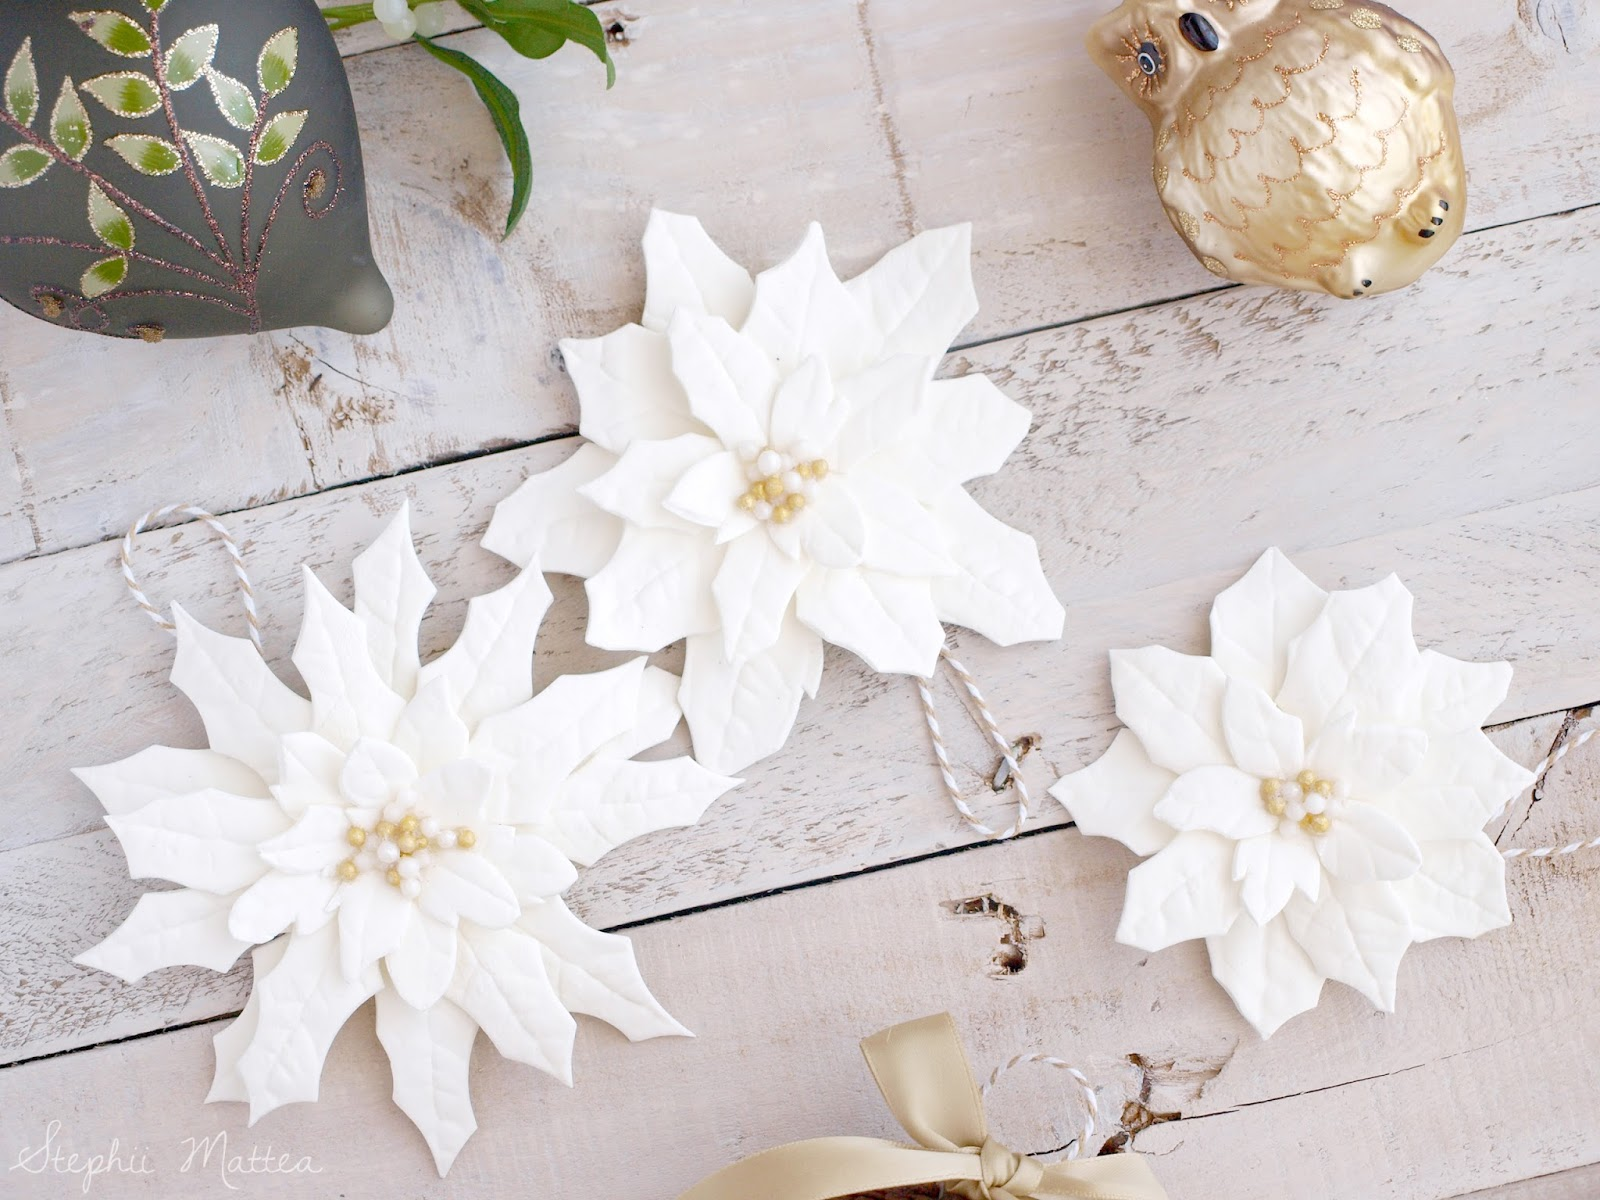 Blogmas Day 8 Diy Clay Poinsettia Ornaments Stephii Mattea